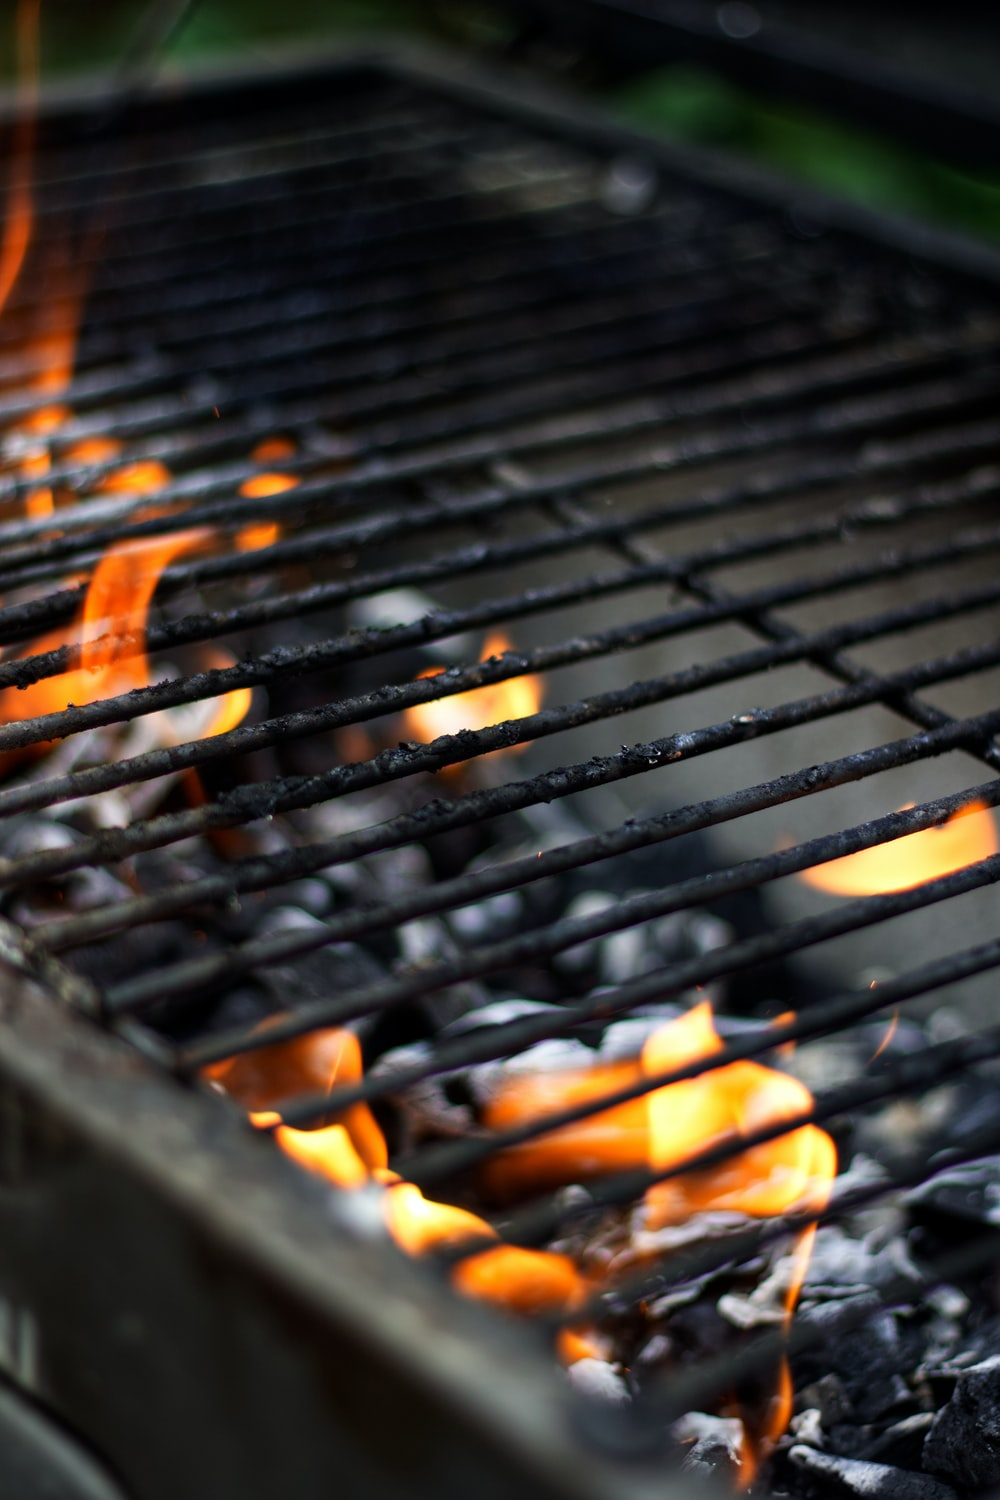 burning charcoal on charcoal grill